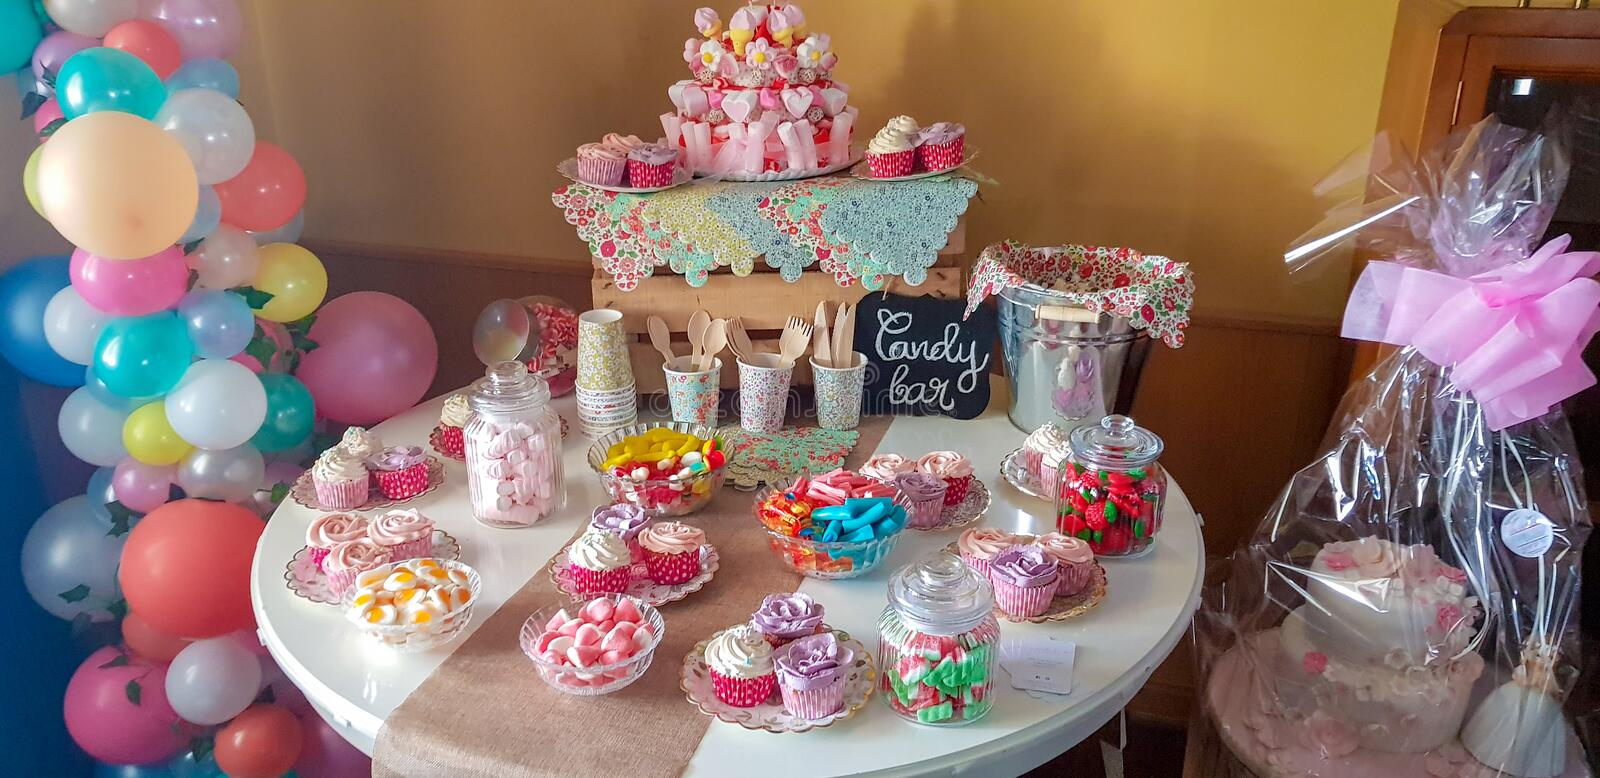 Cake, candies, marshmallows, cakepops, fruits and other sweets on dessert table at kids birthday party royalty free stock photos